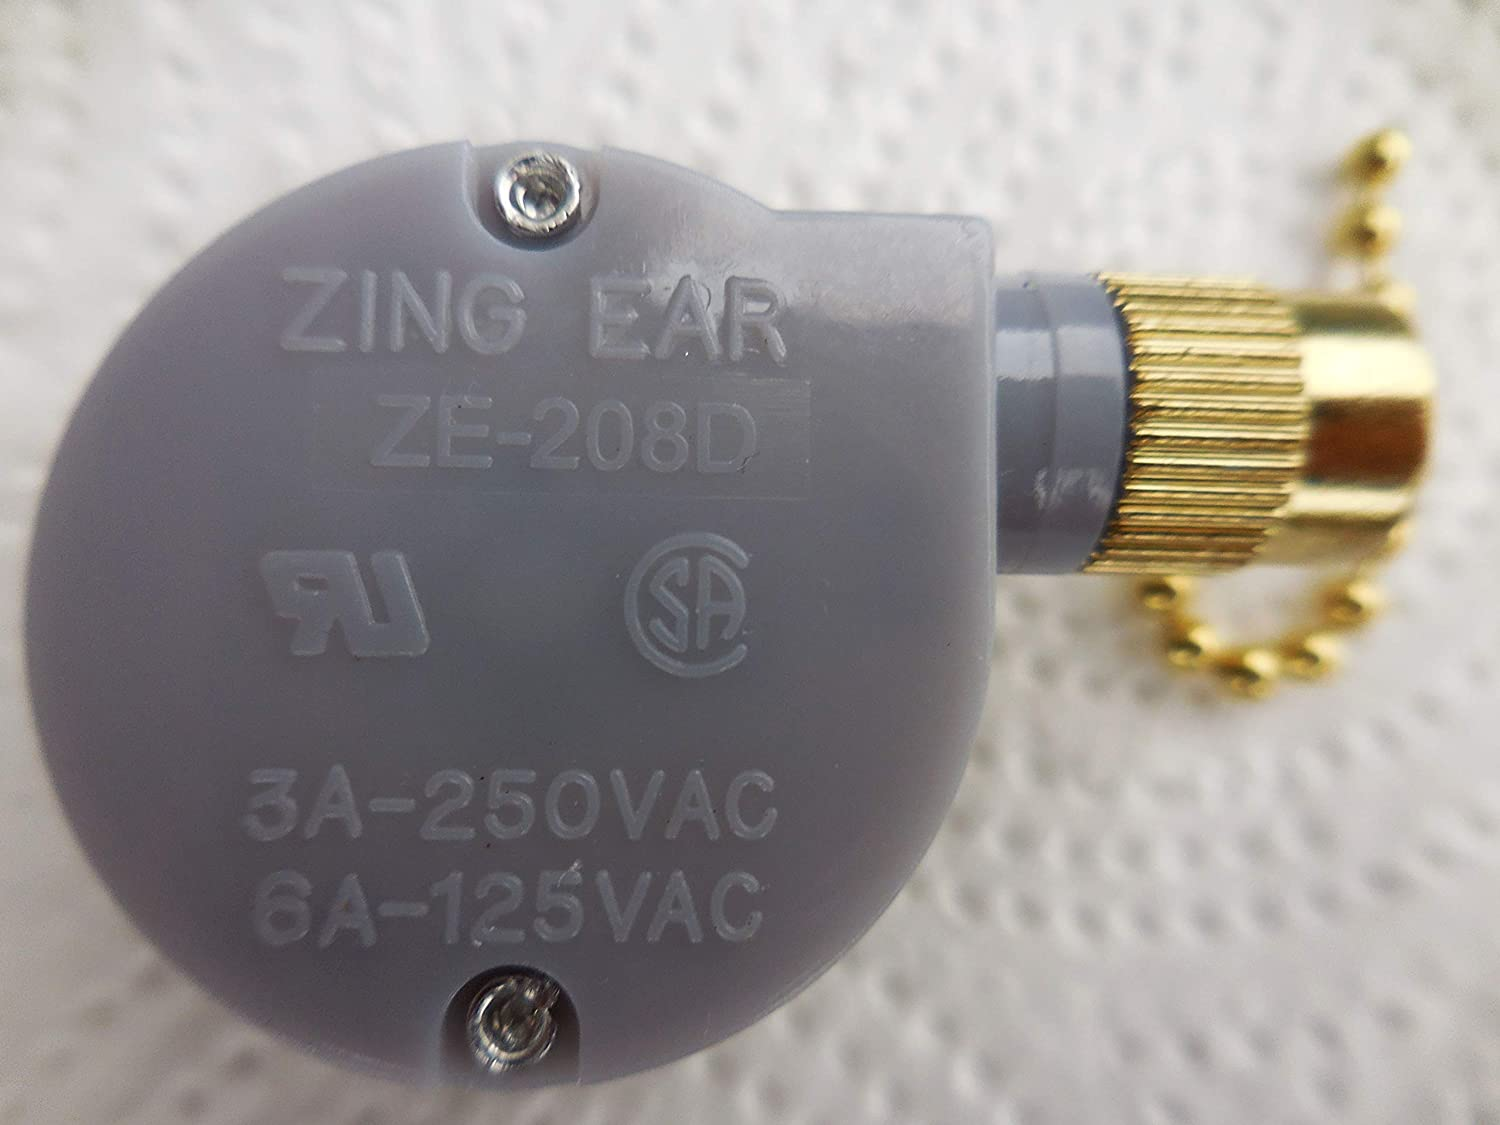 Genuine Zing Ear Ceiling Fan Pull Chain 2 Speed Control Replacement ...